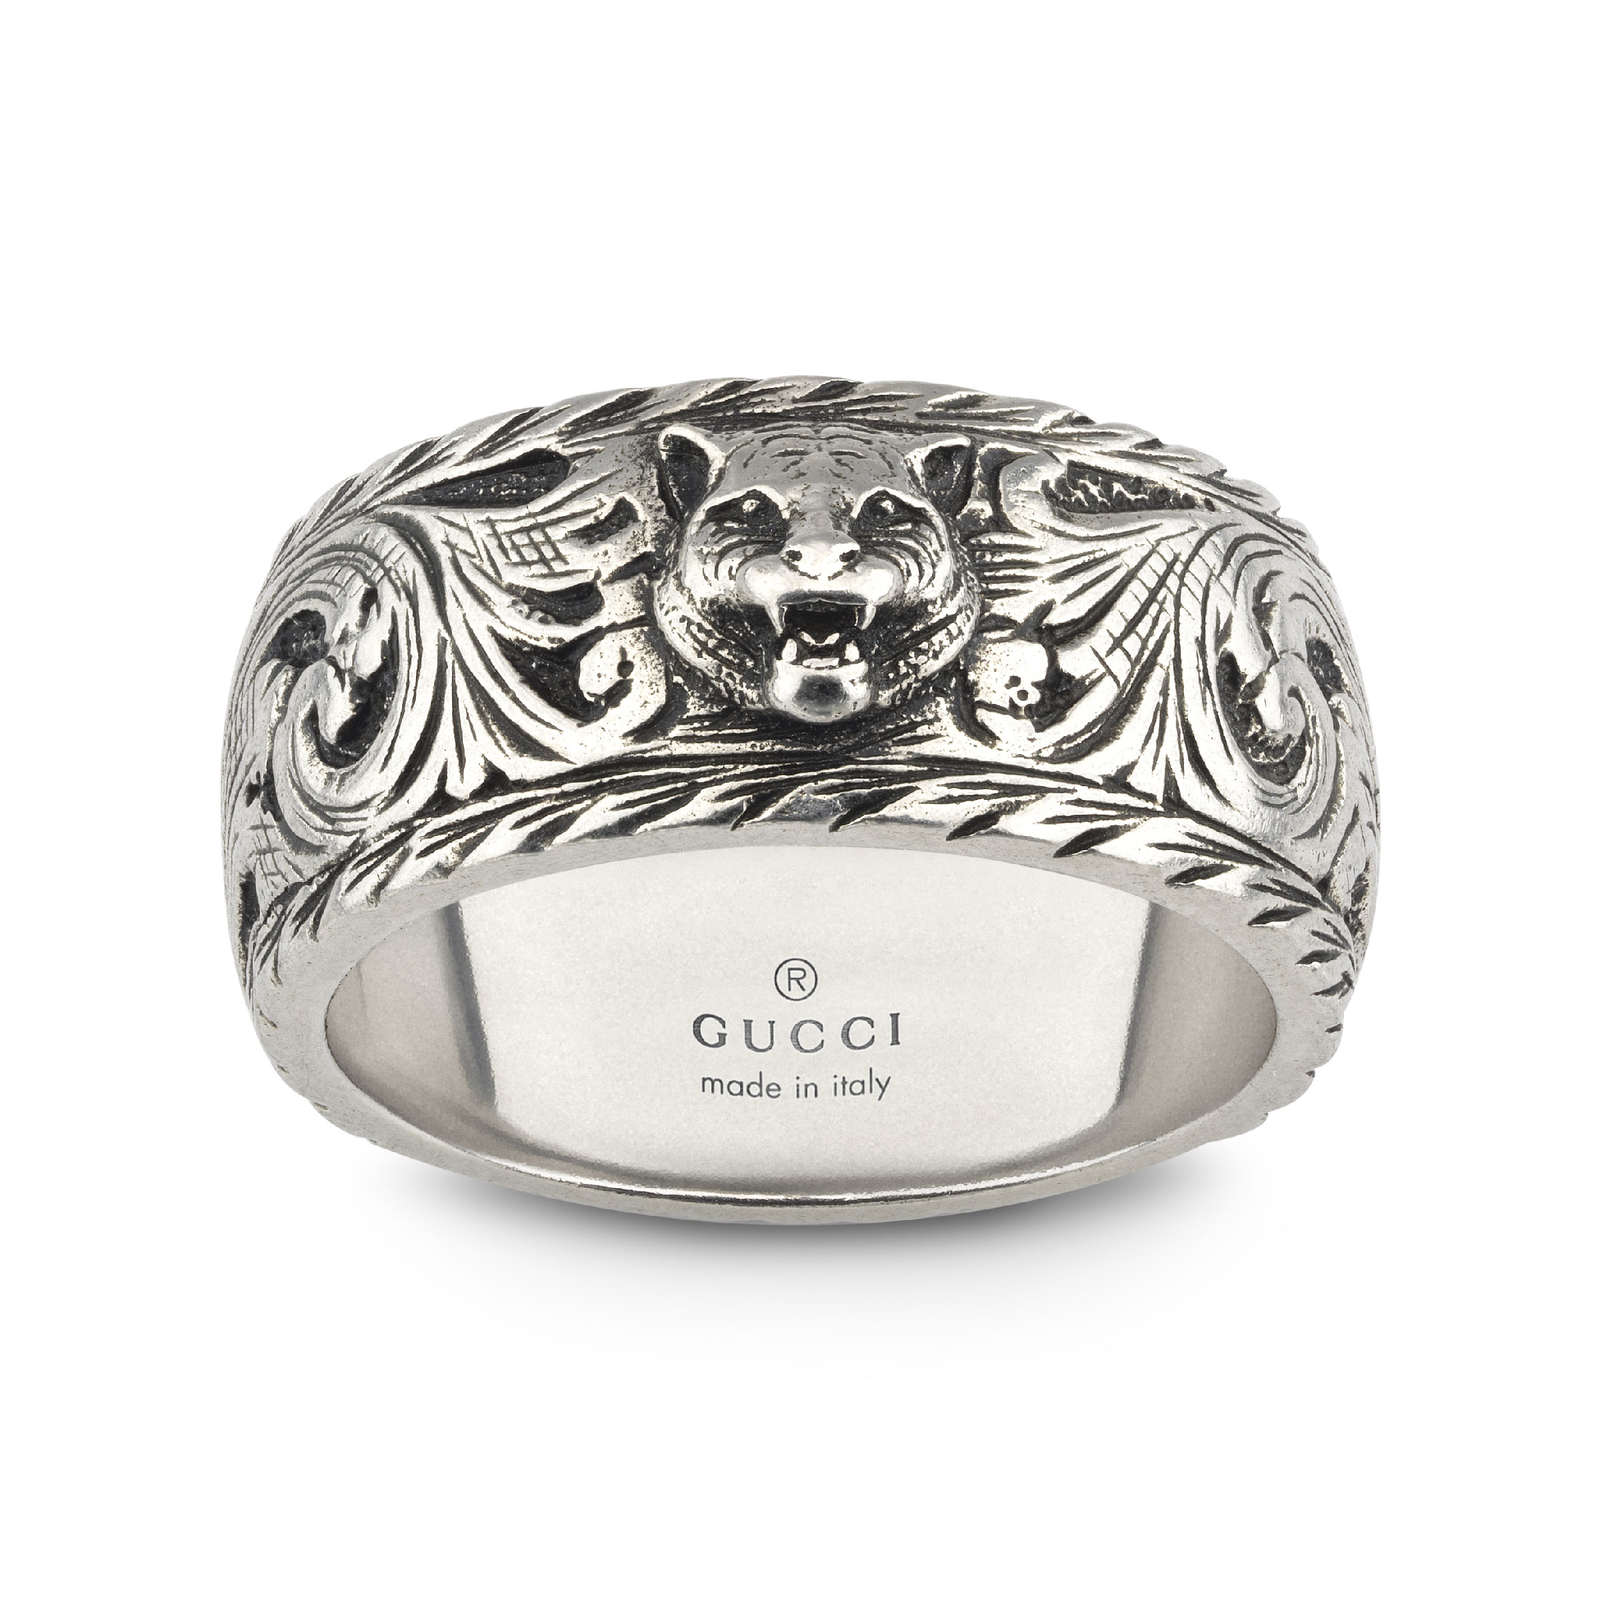 Gucci Gatto Thin Silver 10mm Ring with Feline Head - Ring Size P